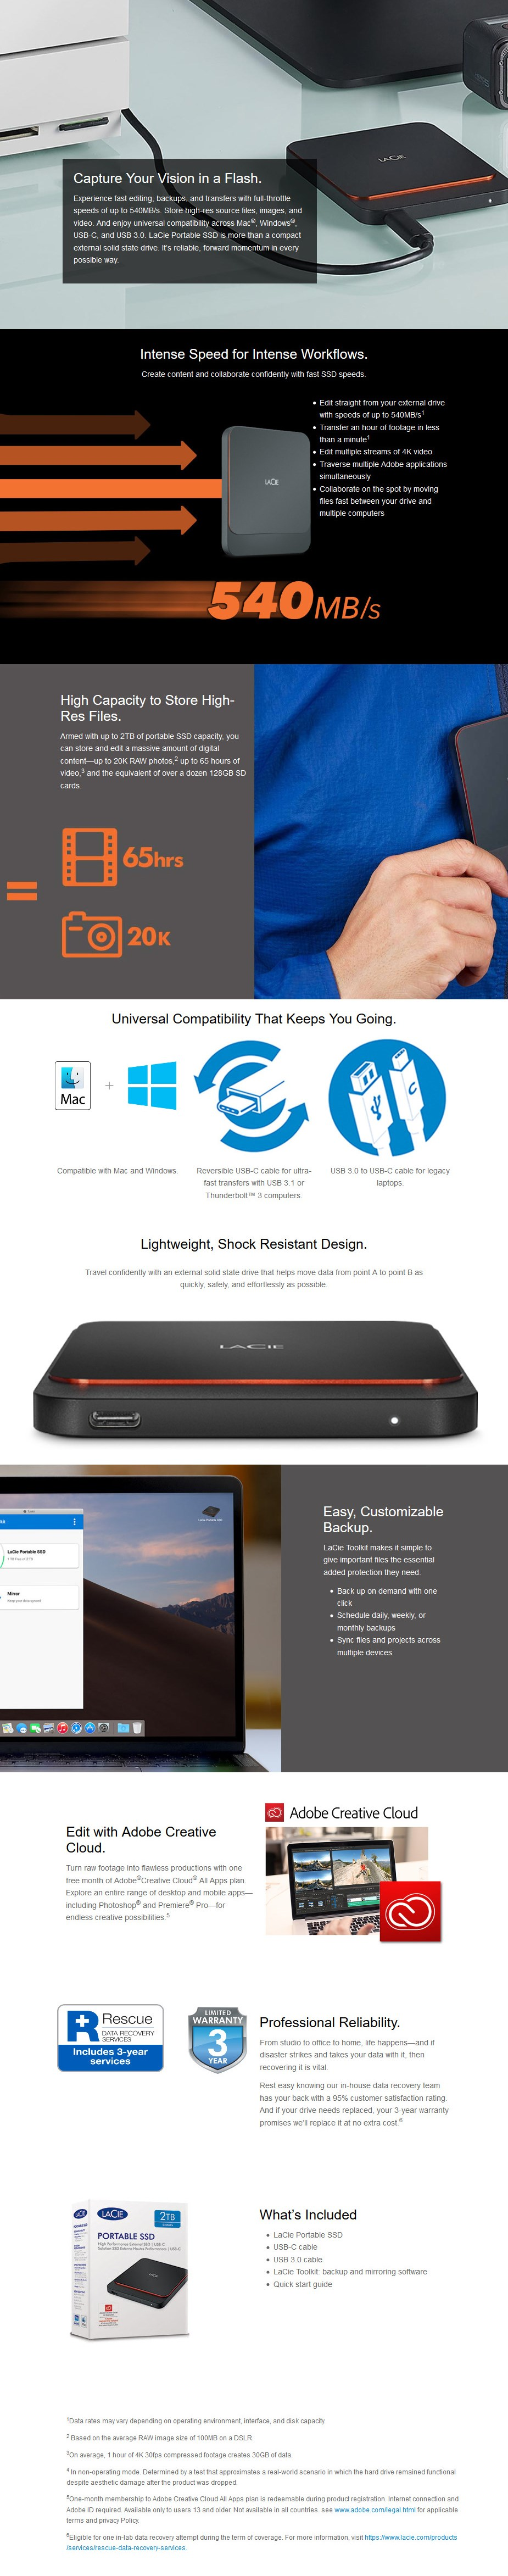 LaCie 2TB USB 3.1 Gen 2 Type-C Portable External SSD - Desktop Overview 1